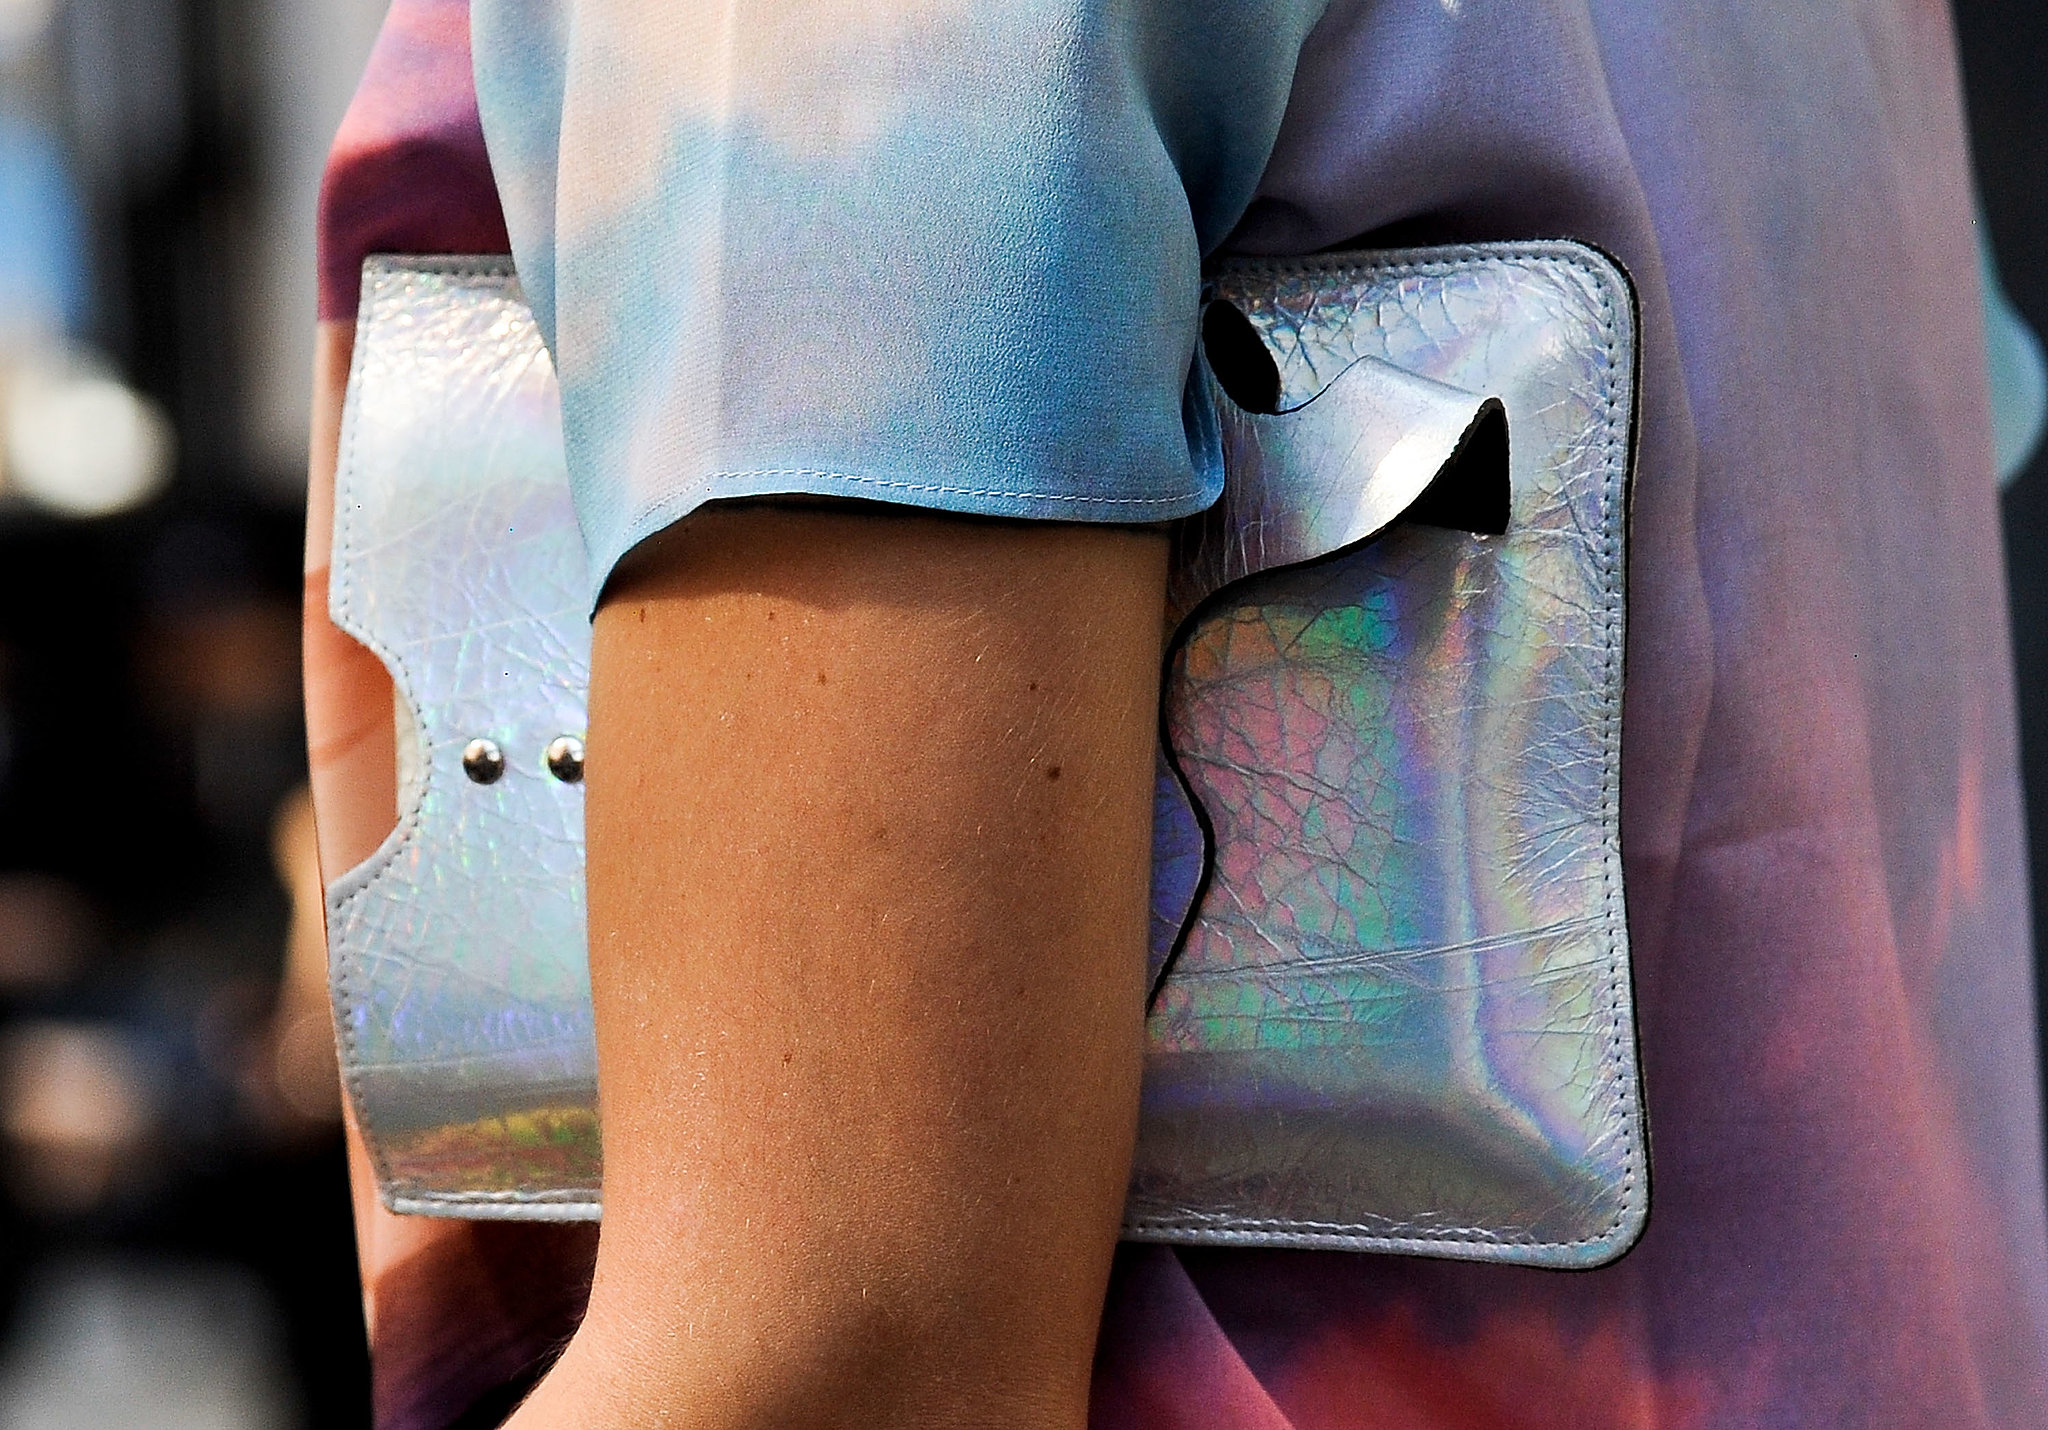 A holographic clutch against a little ombre is completely eye-catching.